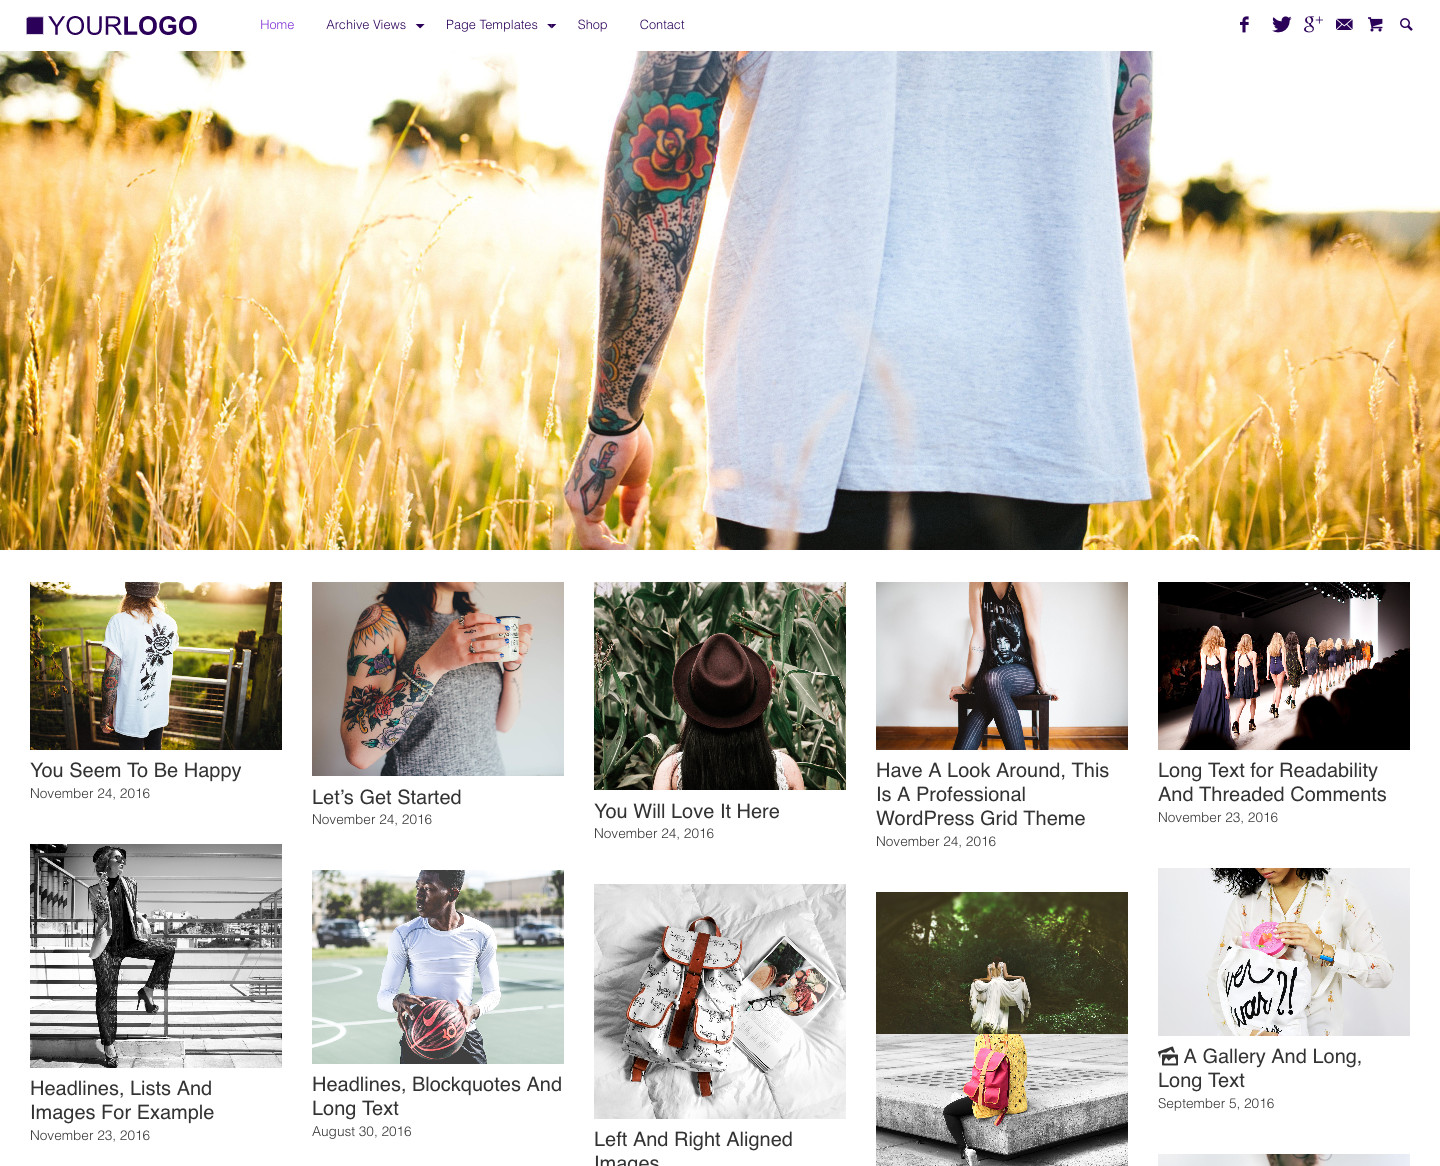 WordPress Grid Theme